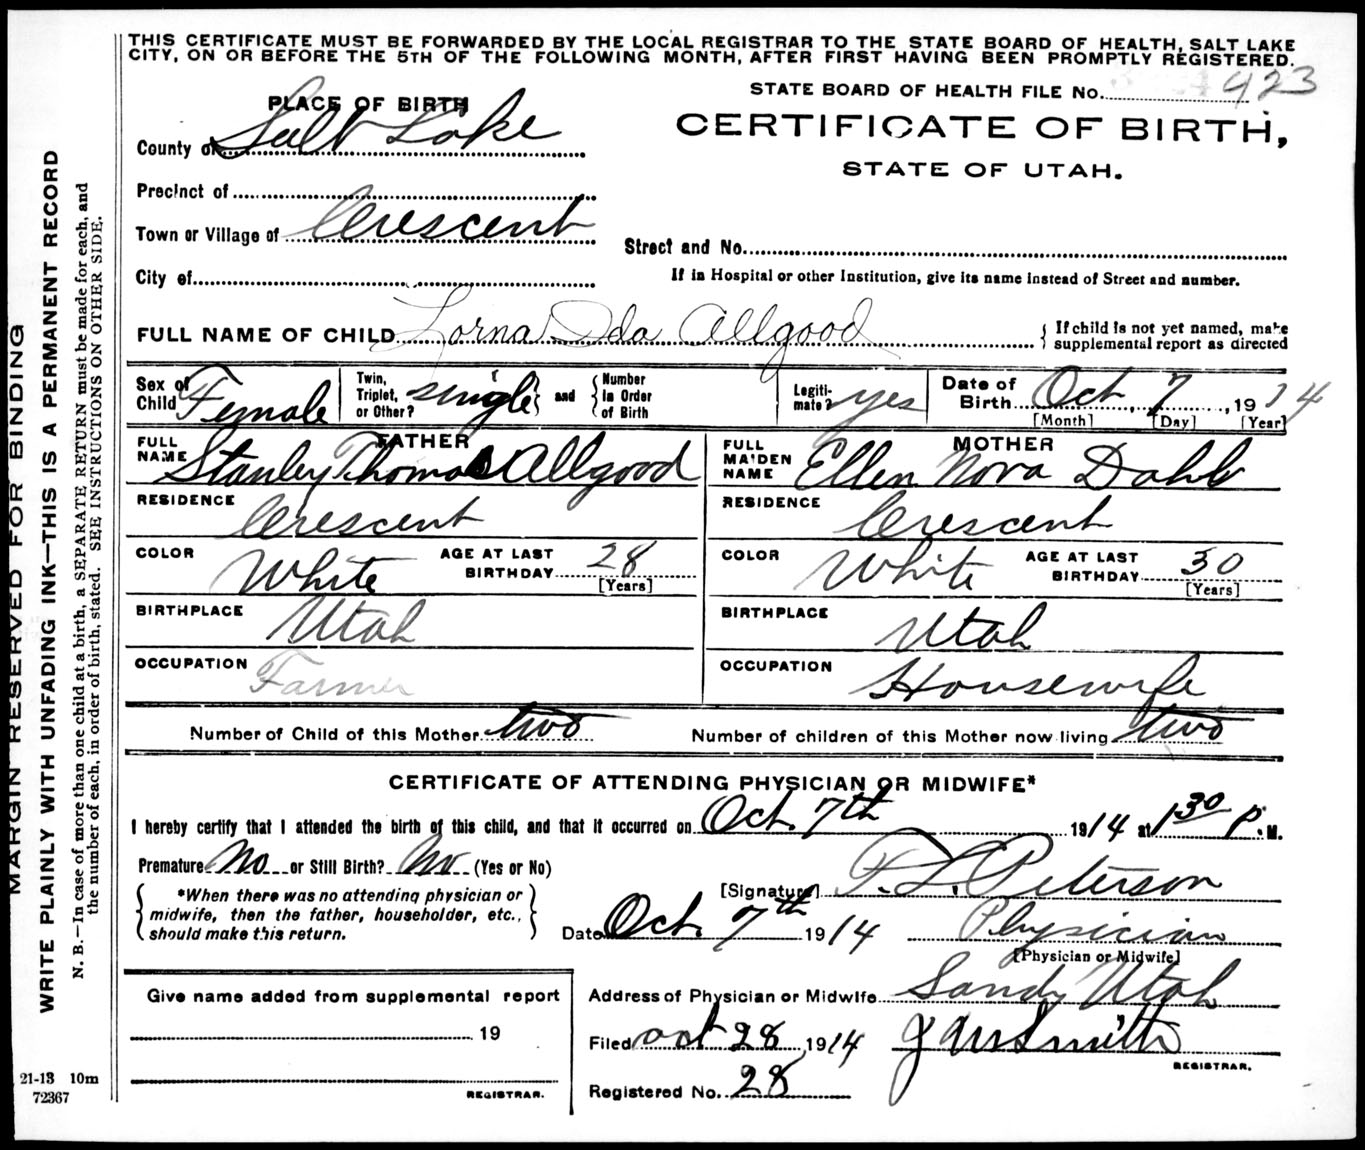 Browse Birth Certificates Online: 1914 - Utah State Archives